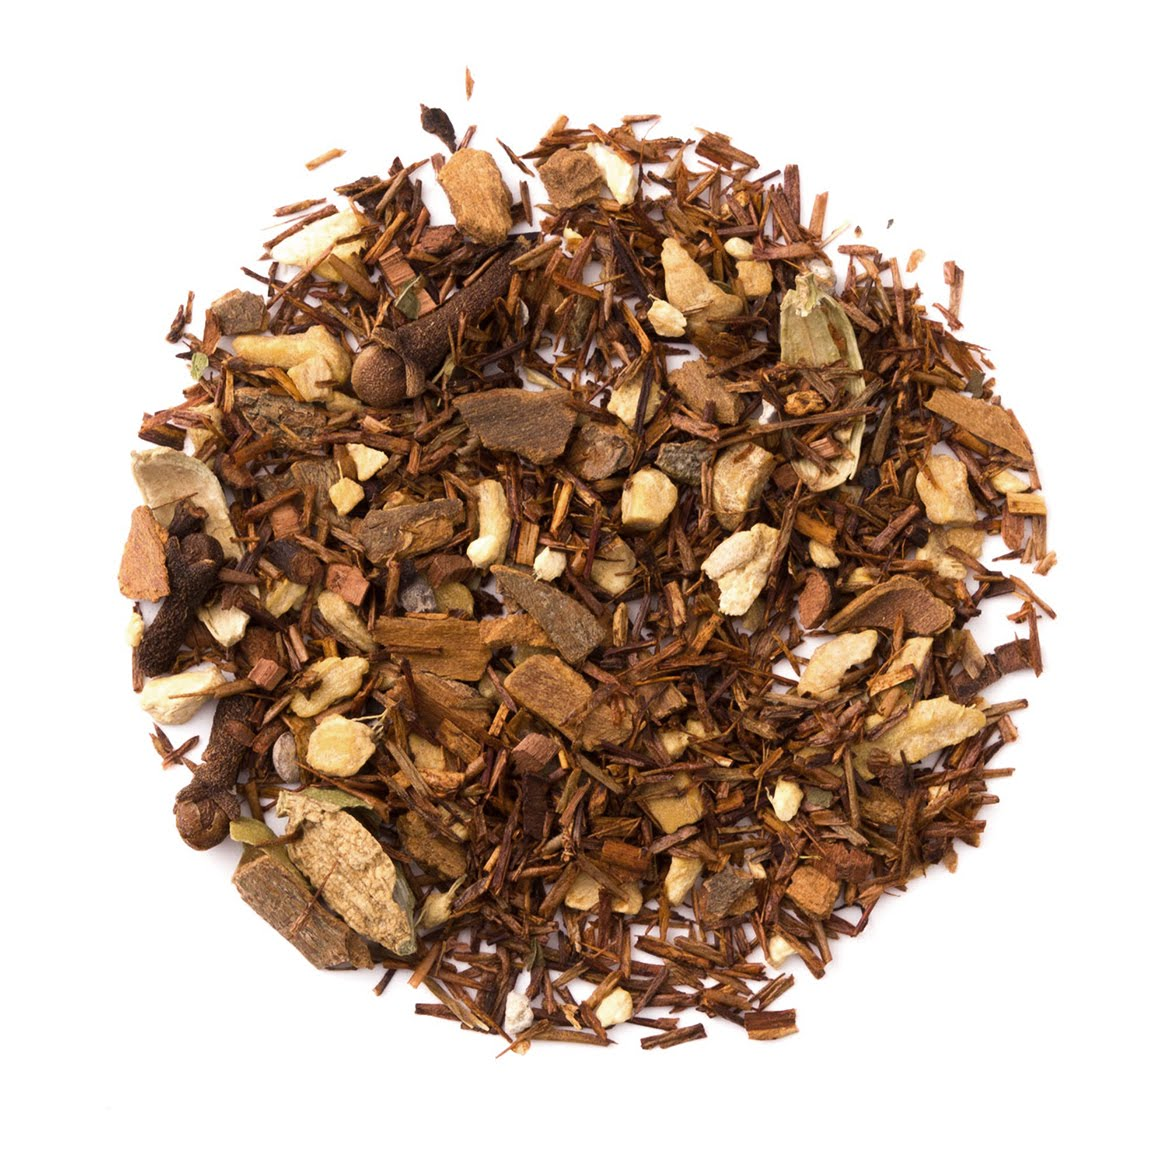 Chai Tea - Loose Leaf Chai Teas & Herbal Tisanes - Chai Tea Blends - Heavenly Tea Leaves